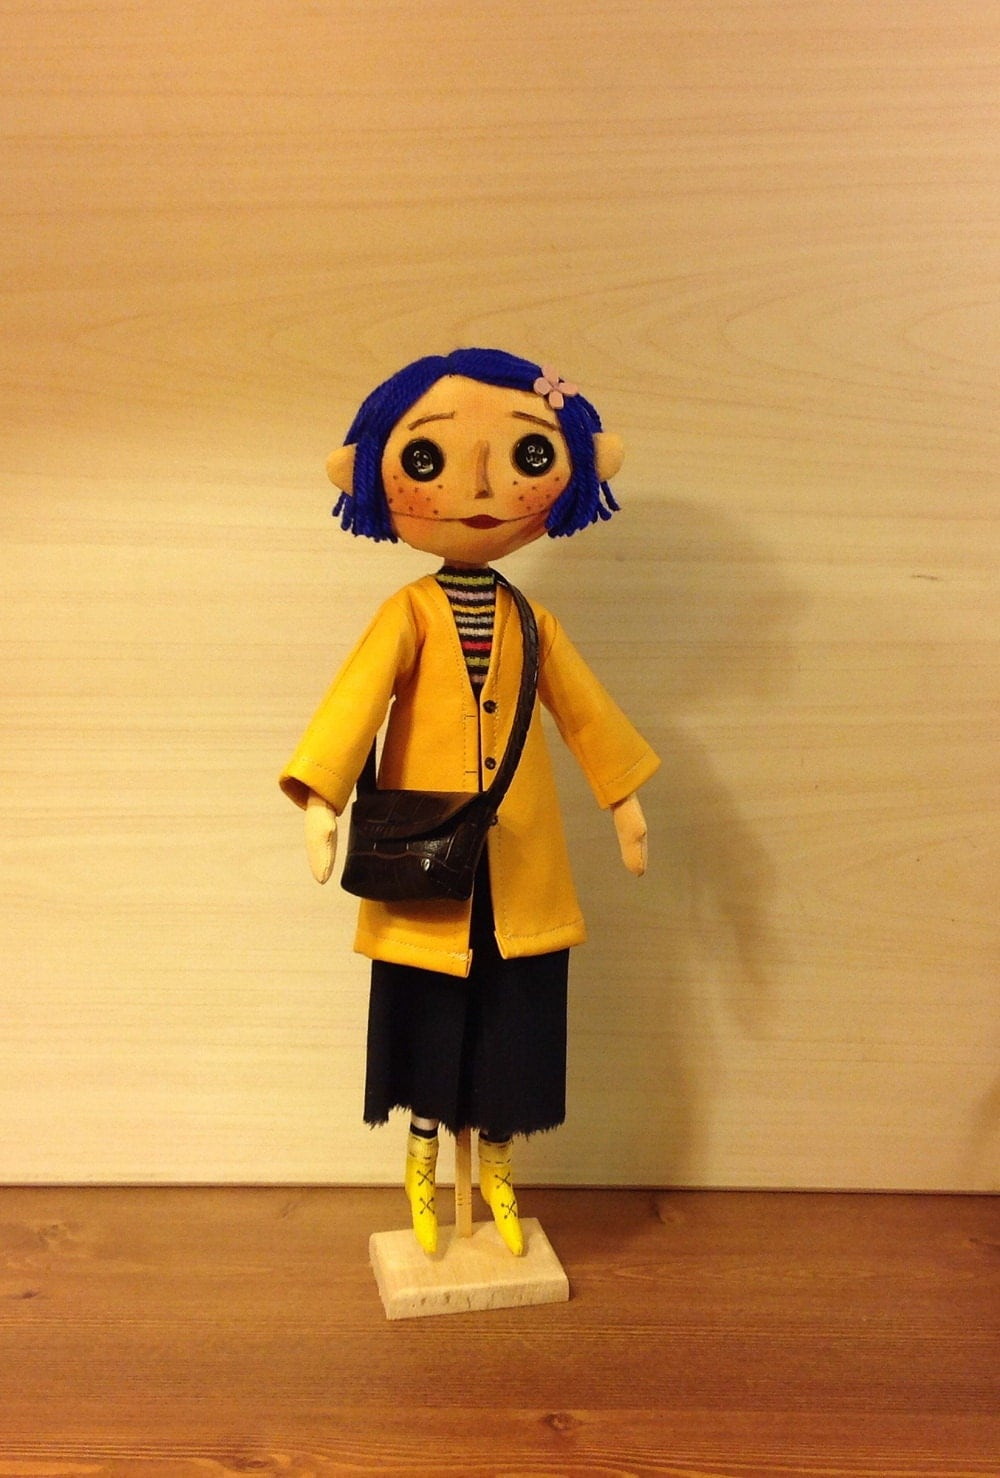 Coraline Cartoon Full Movie Free Download